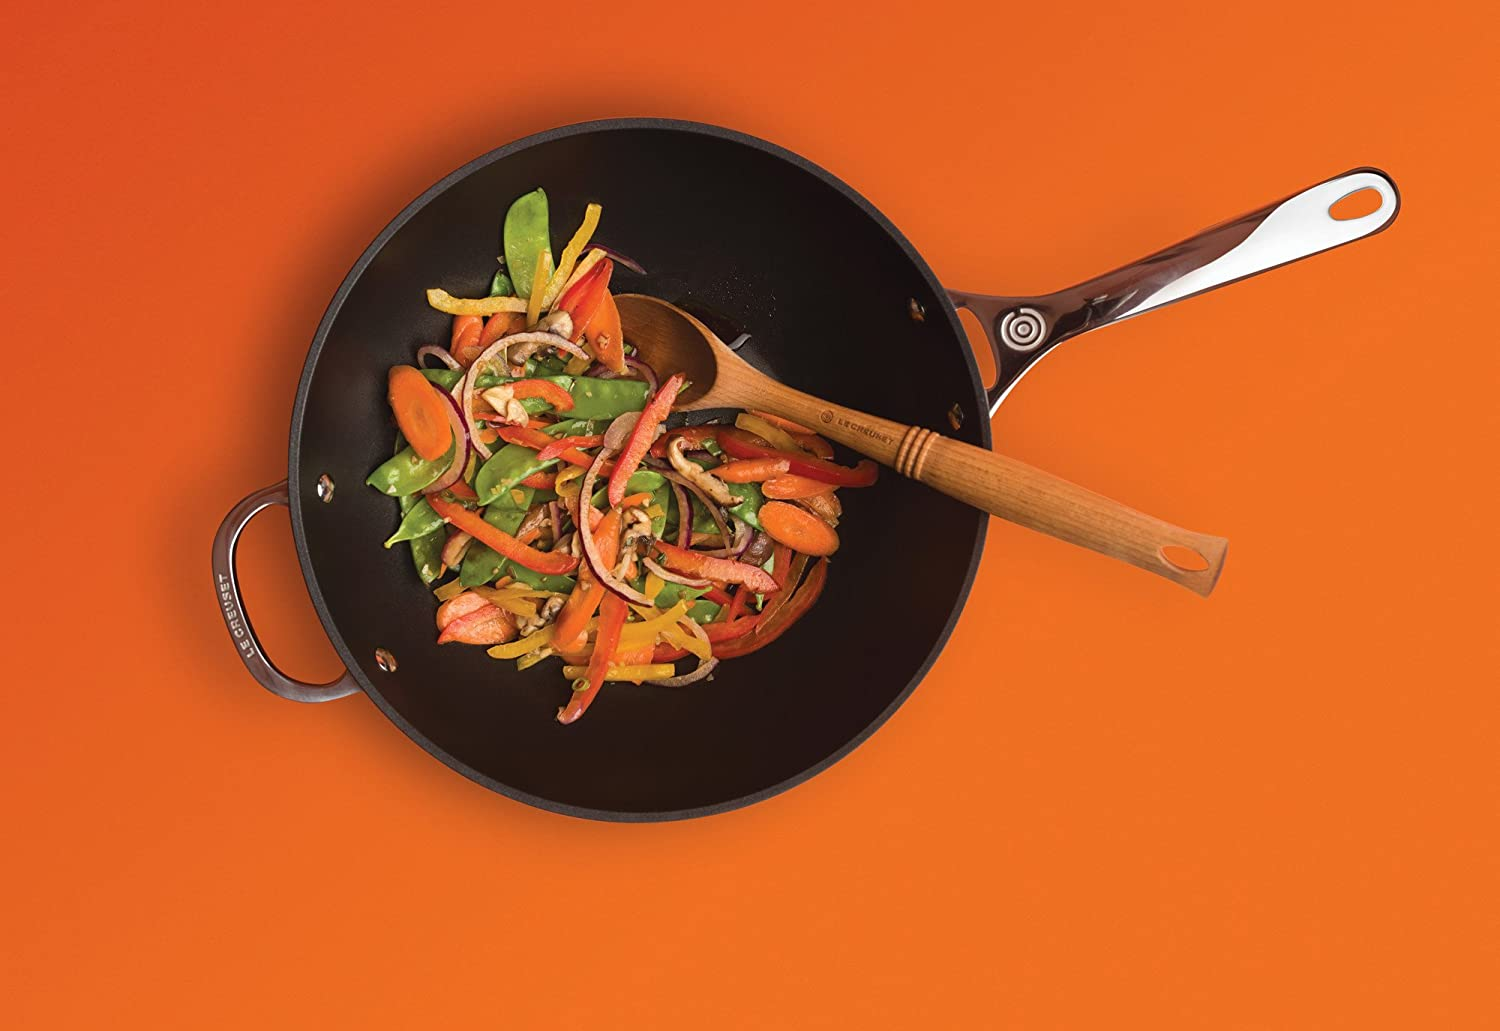 Le Creuset of America Toughened NonStick Stir Fry Pan, 12